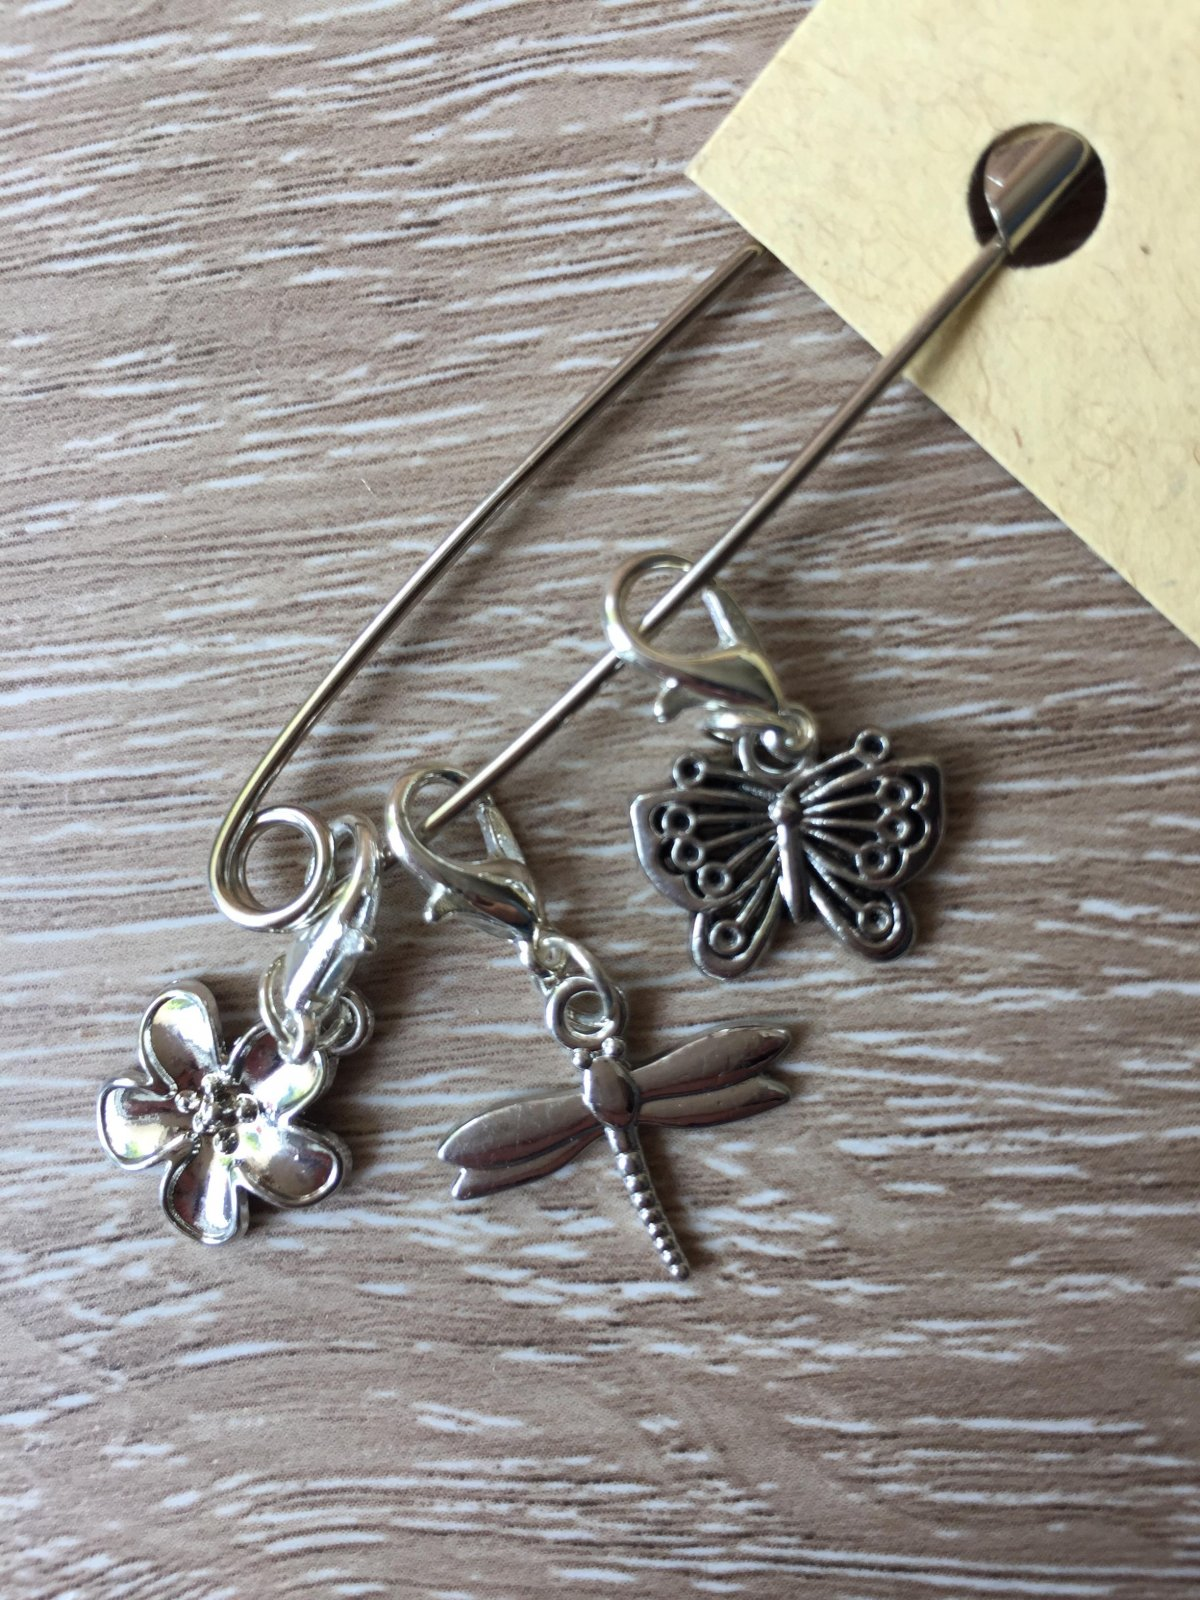 Butterfly and Dragonfly Stitch Markers - handmade knitting accessory